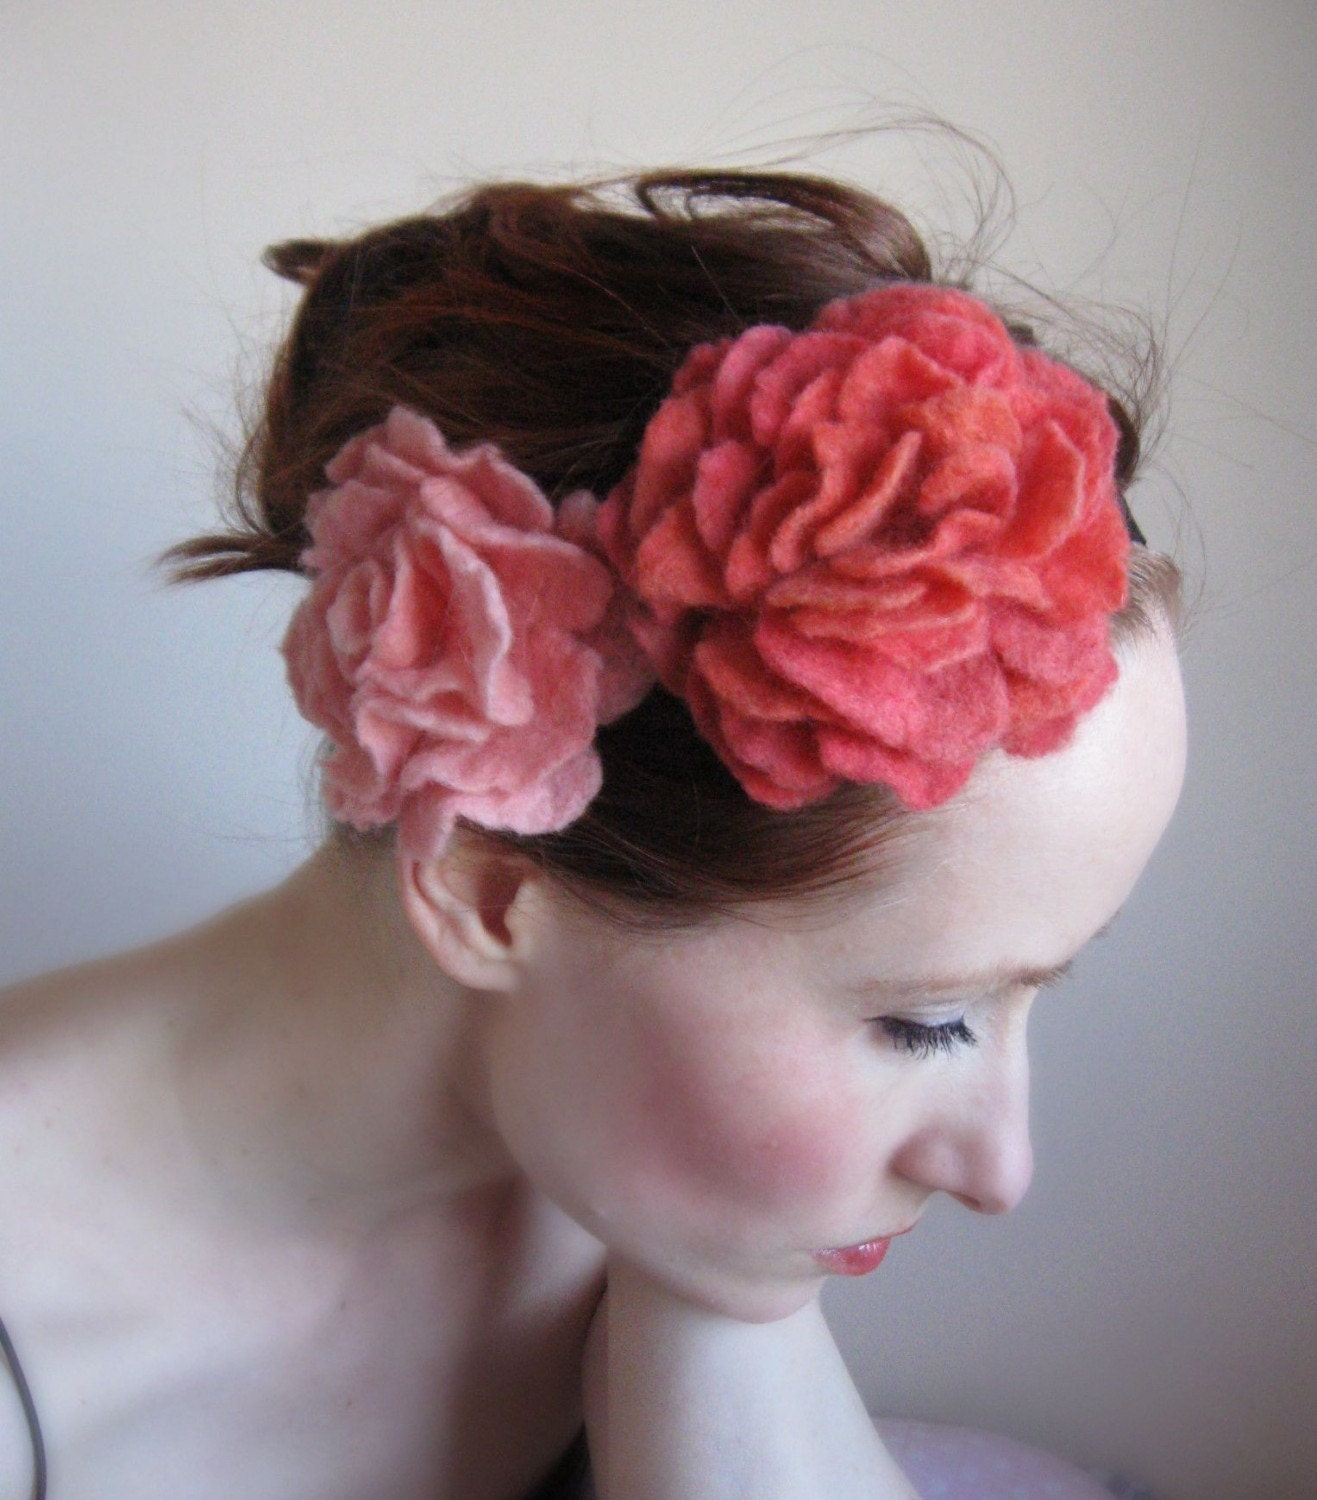 Afternoon delight-Peach and Pink Floral Headband-Hand Felted From Wool